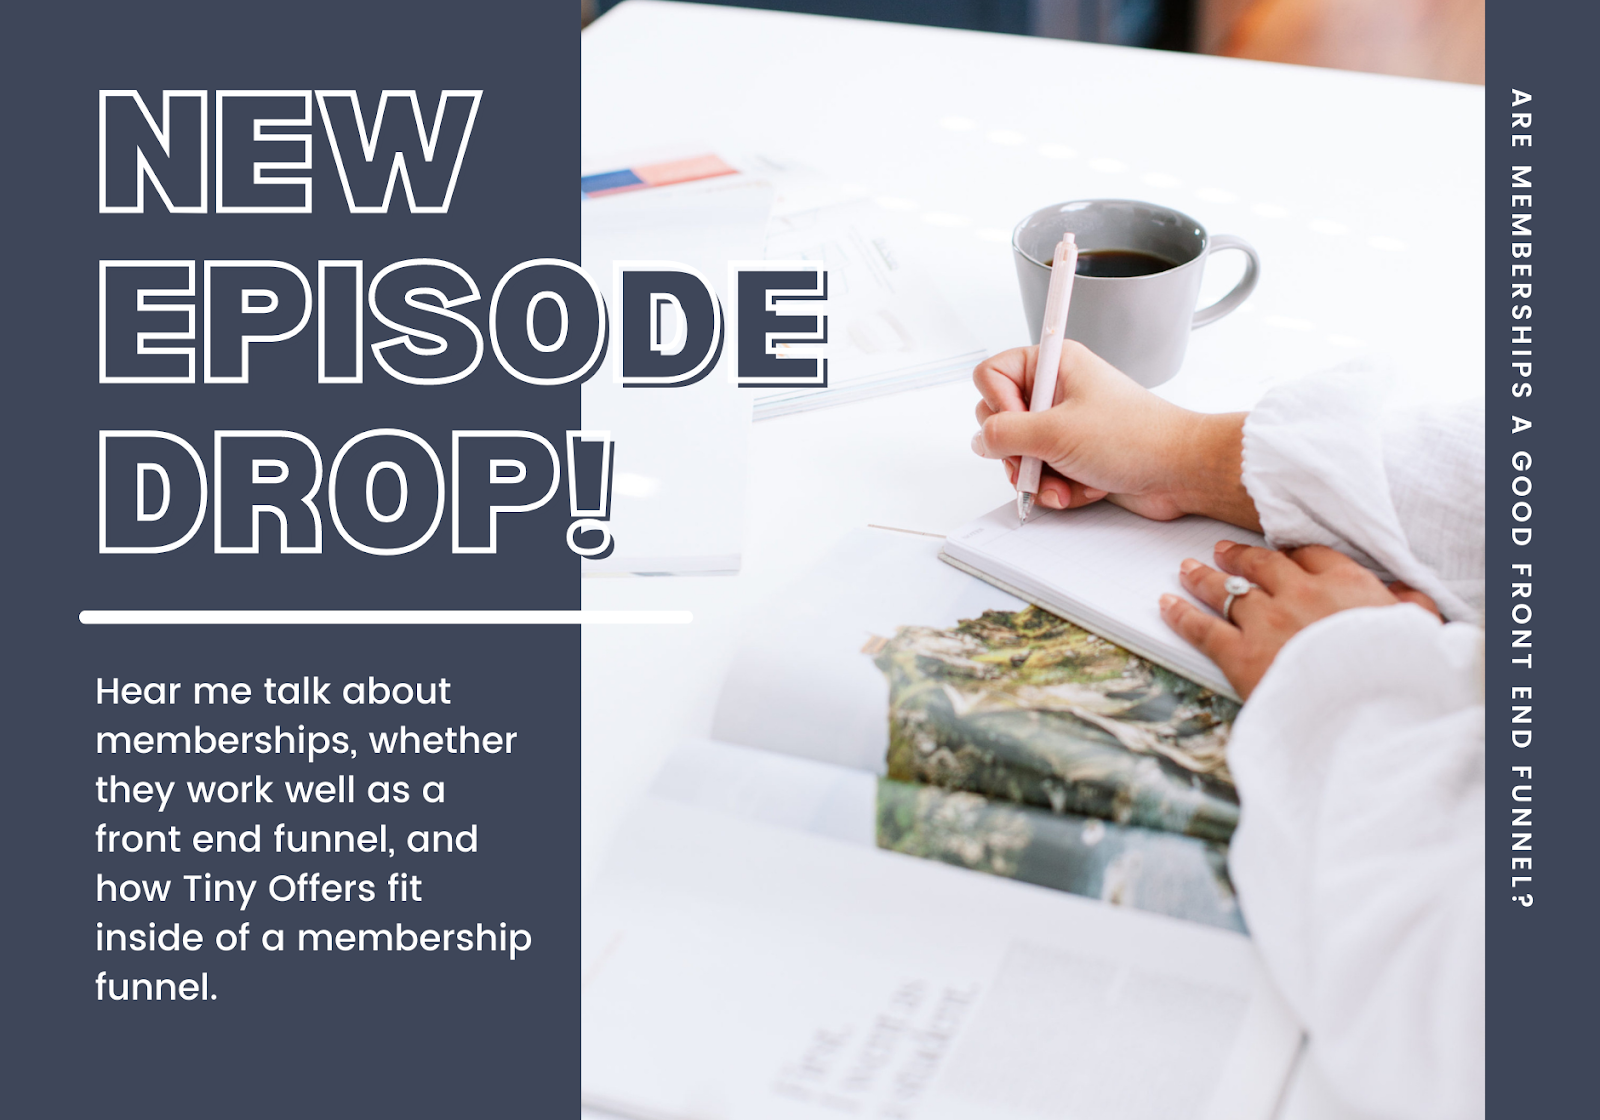 Episode 16 - Are Memberships a Good Front End Funnel